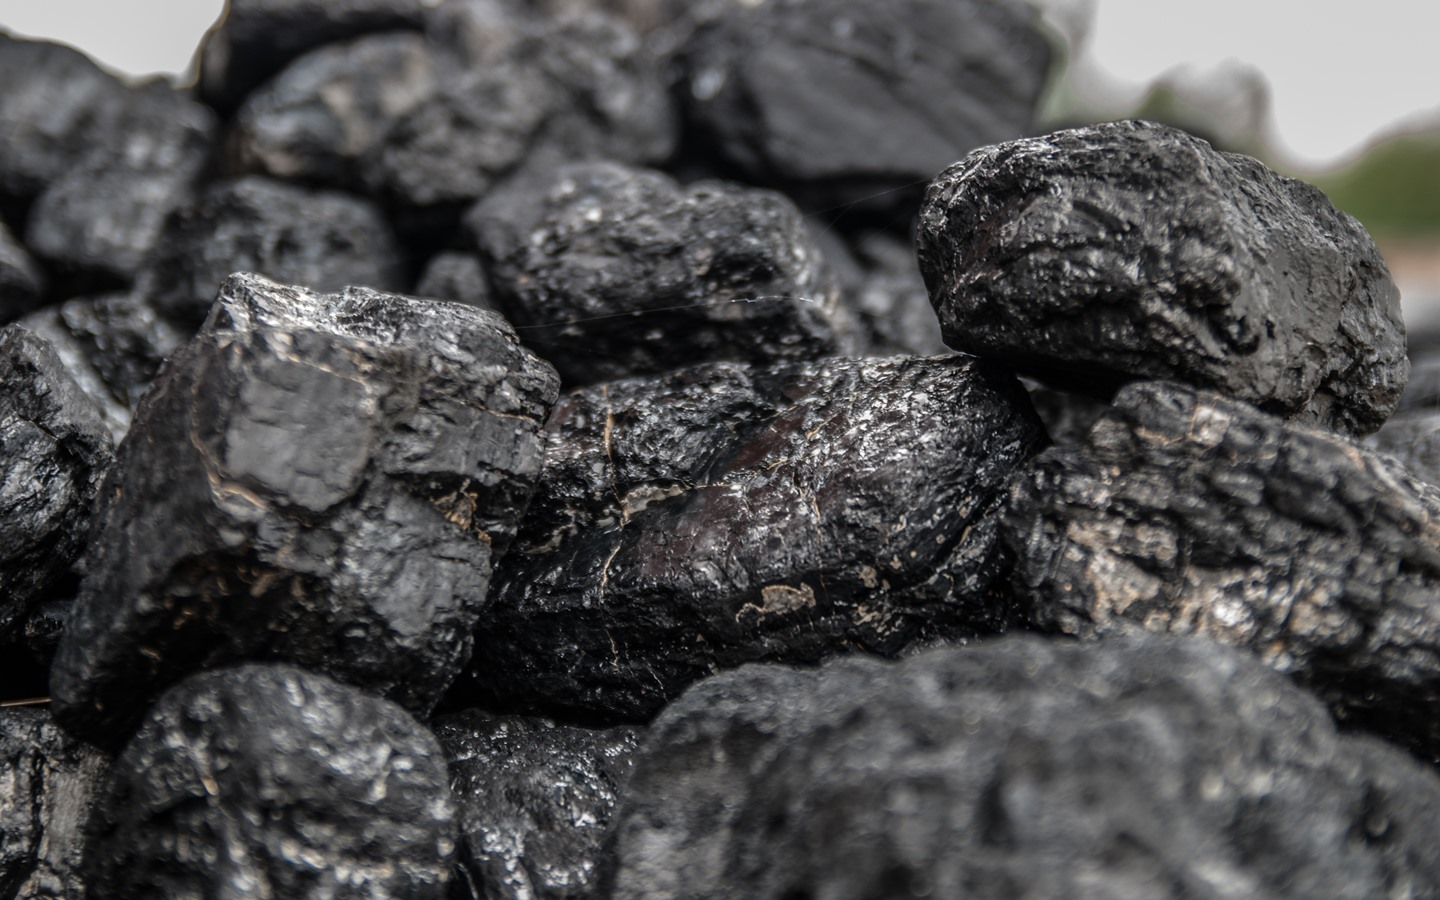 Charcaol briquettes as a smelly house remedy